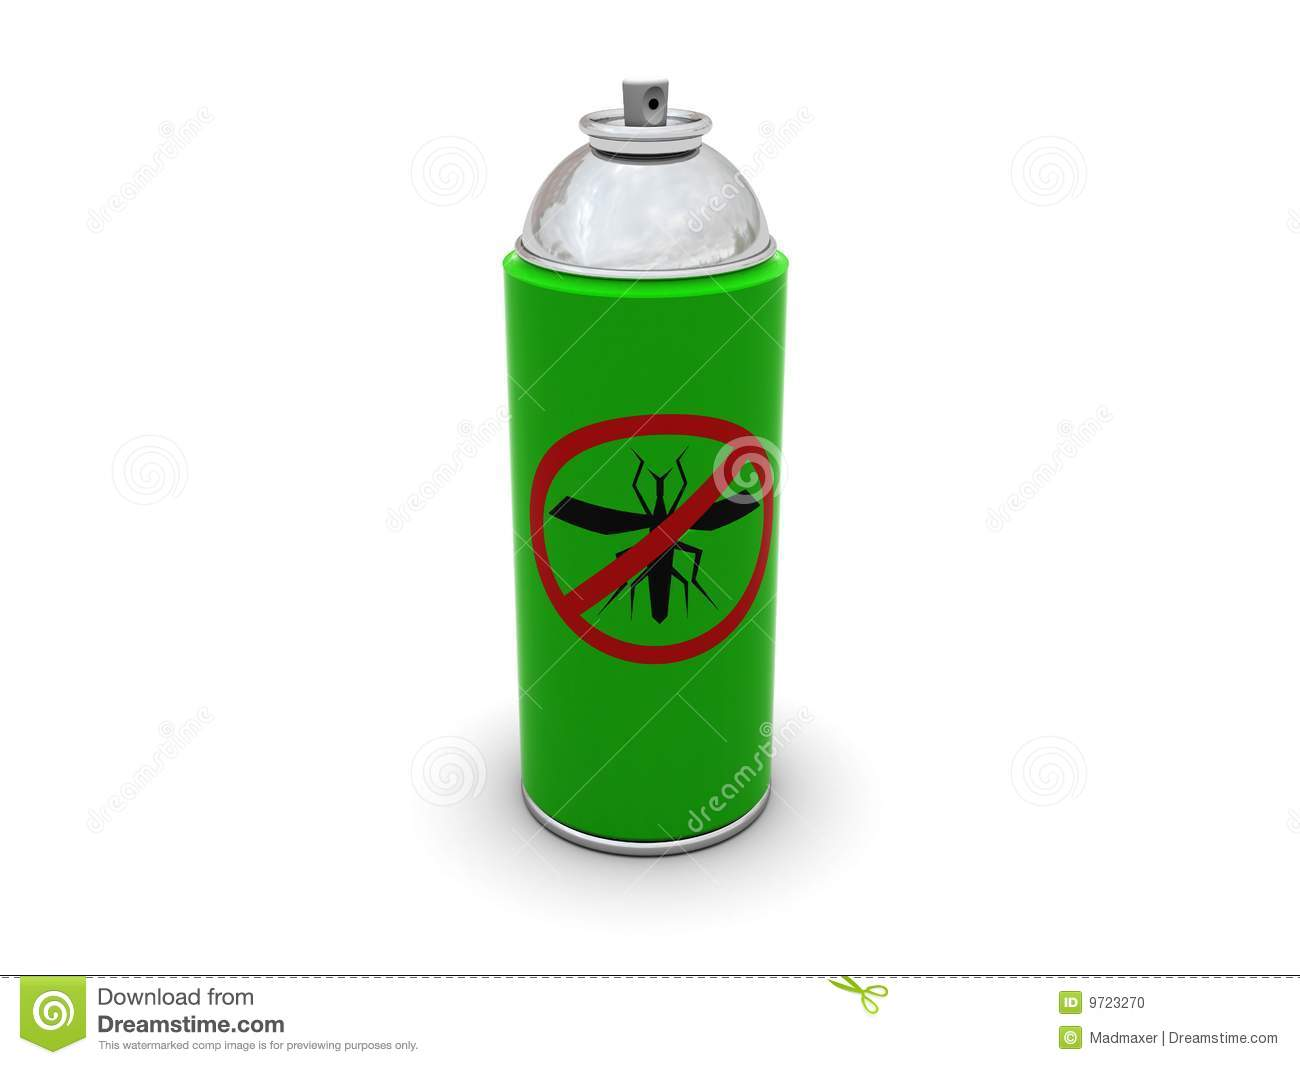 Insecticide Clipart.